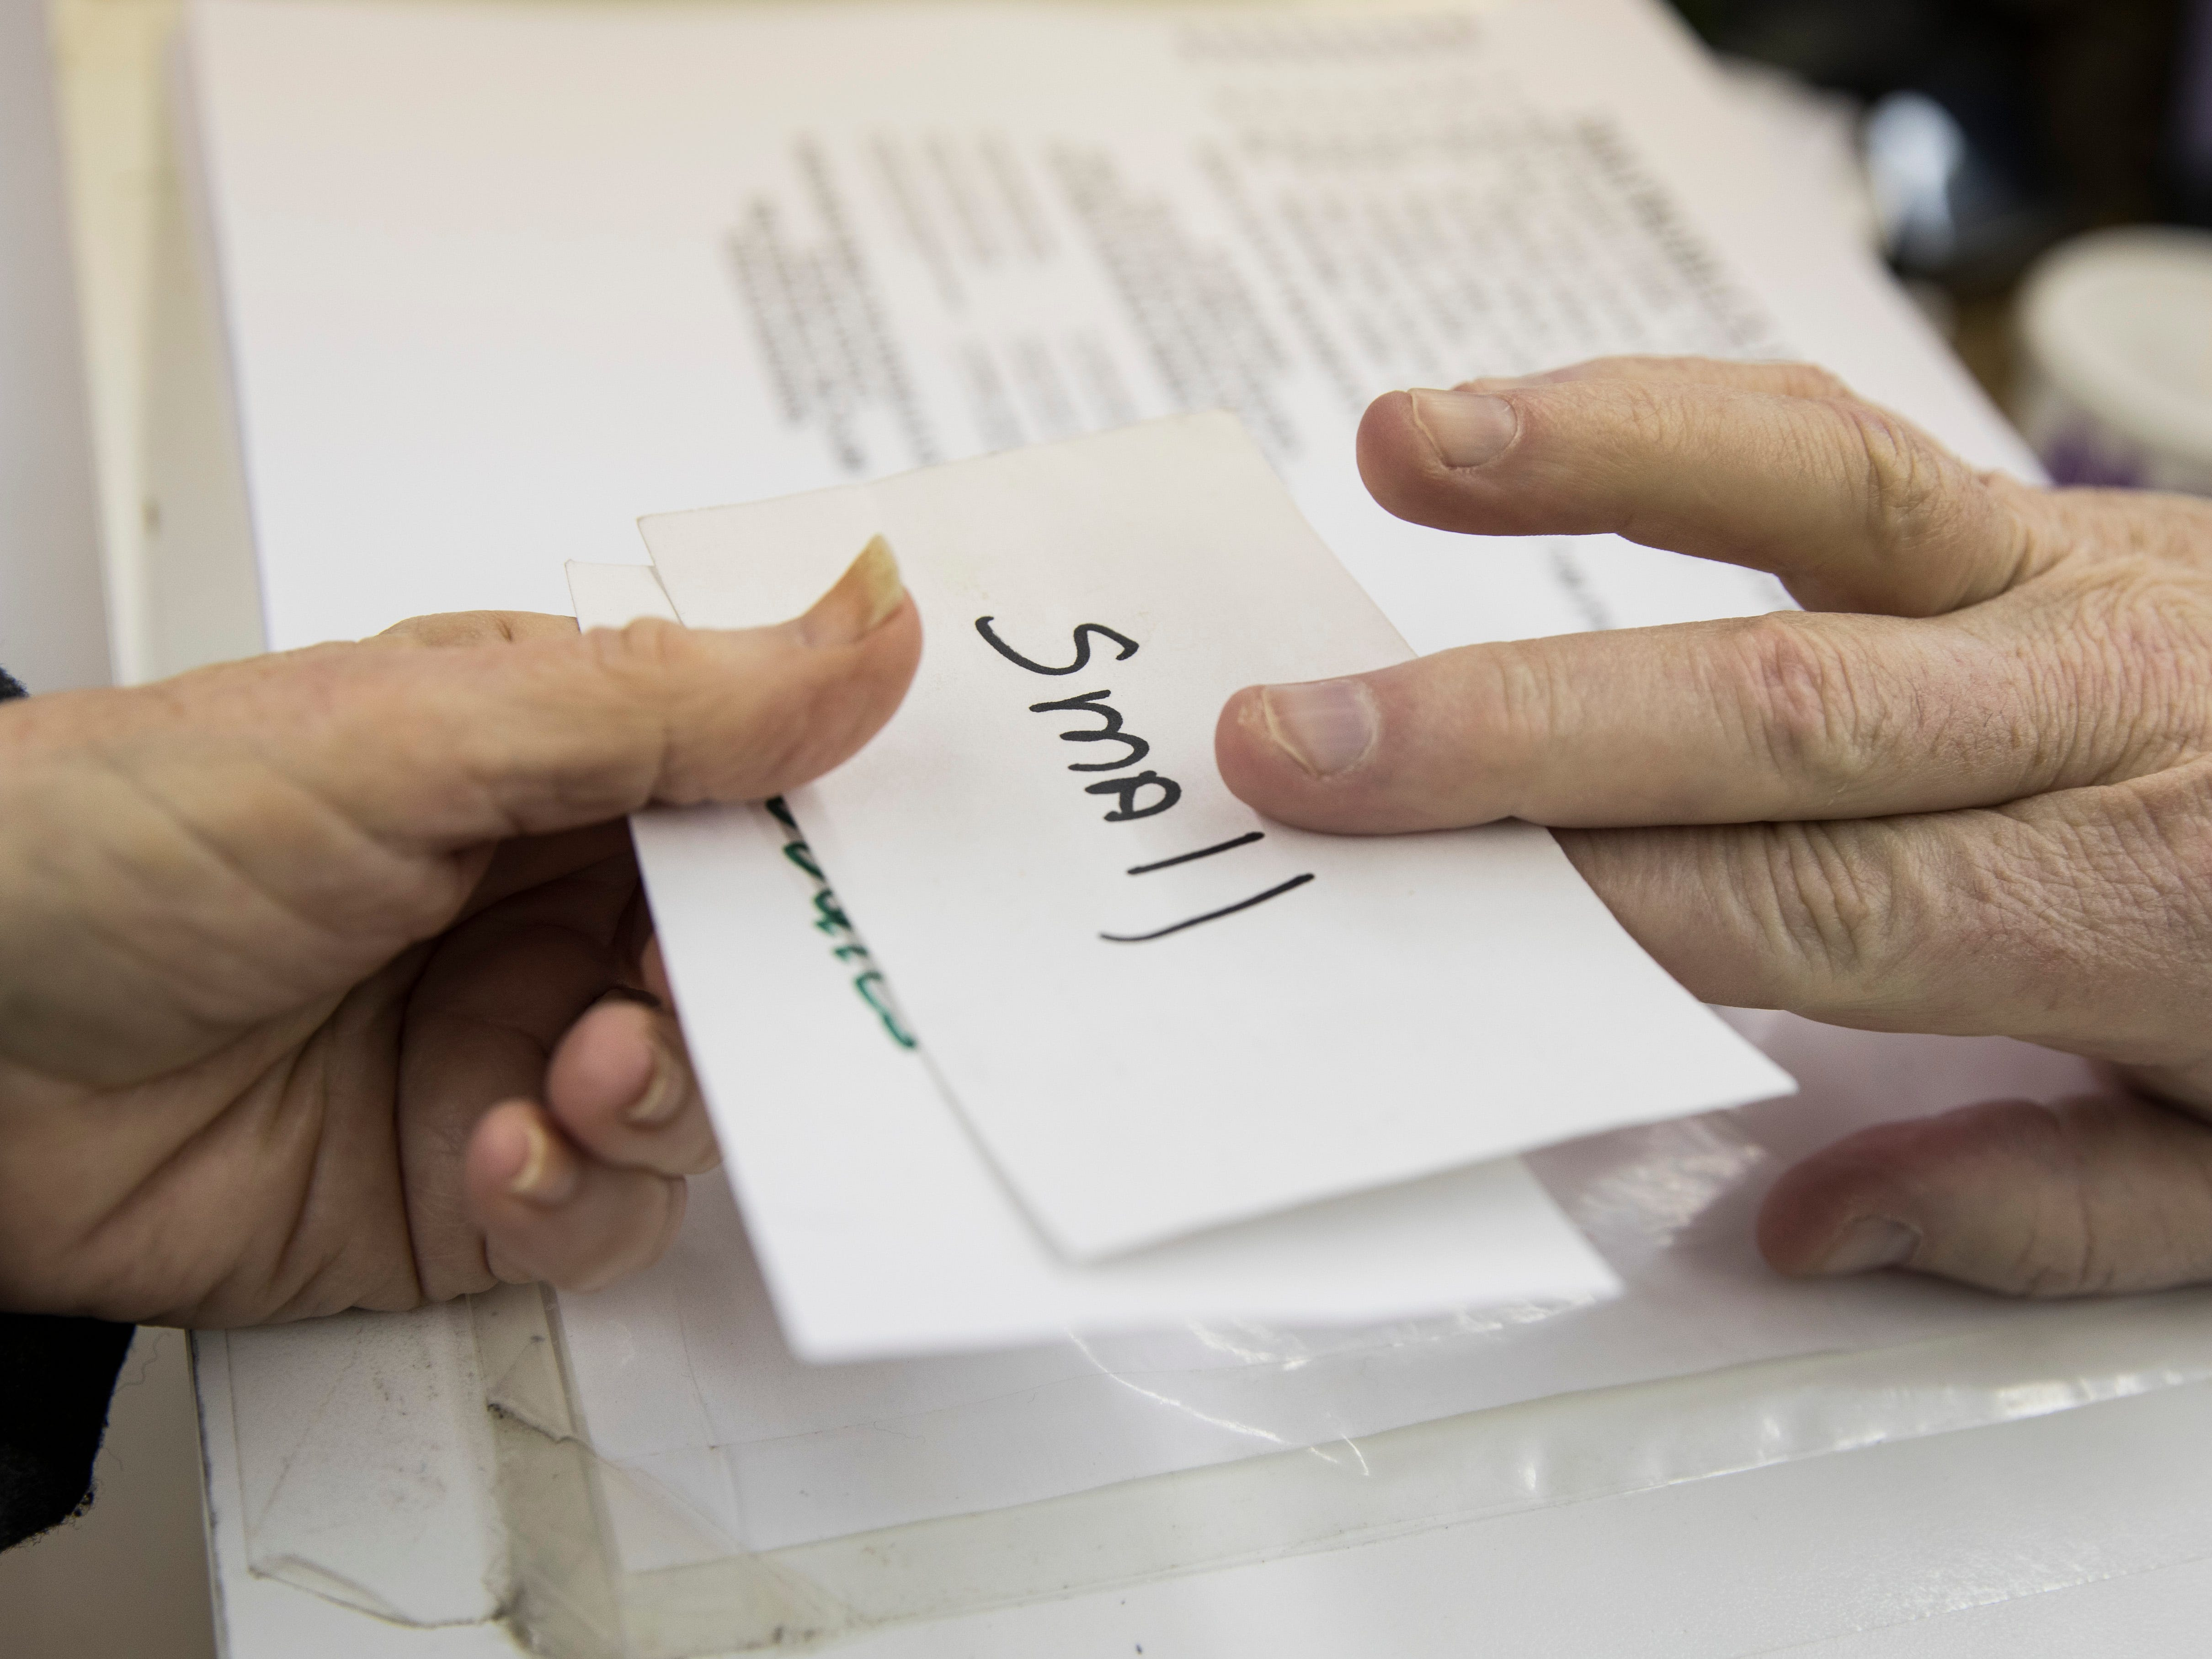 """Good Samaritan Food Pantry clients receive cards that may be labeled """"small"""" to stand for the household size they are getting groceries for. Different local agencies also give referral slips to clients to help them with their needs."""